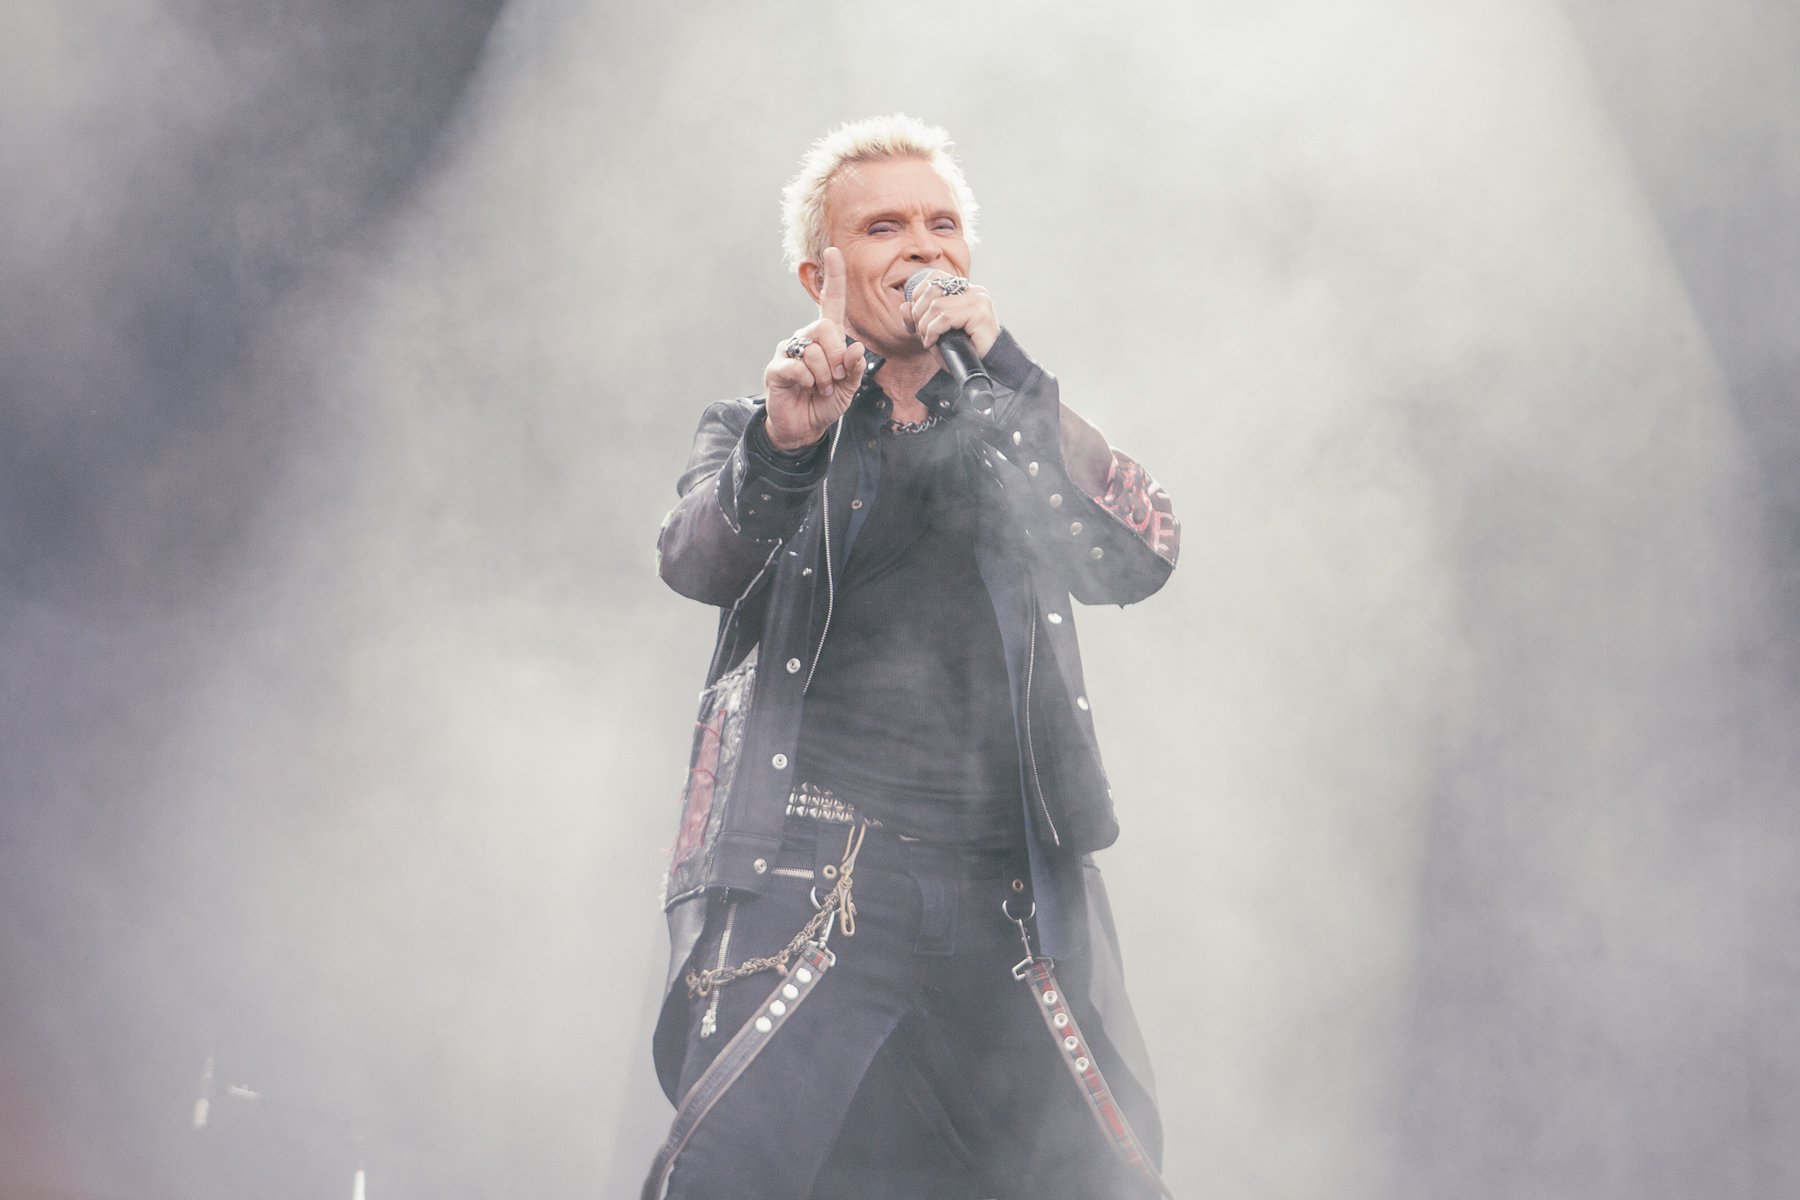 Billy Idol, who was incredible. Like almost as good as that burger.